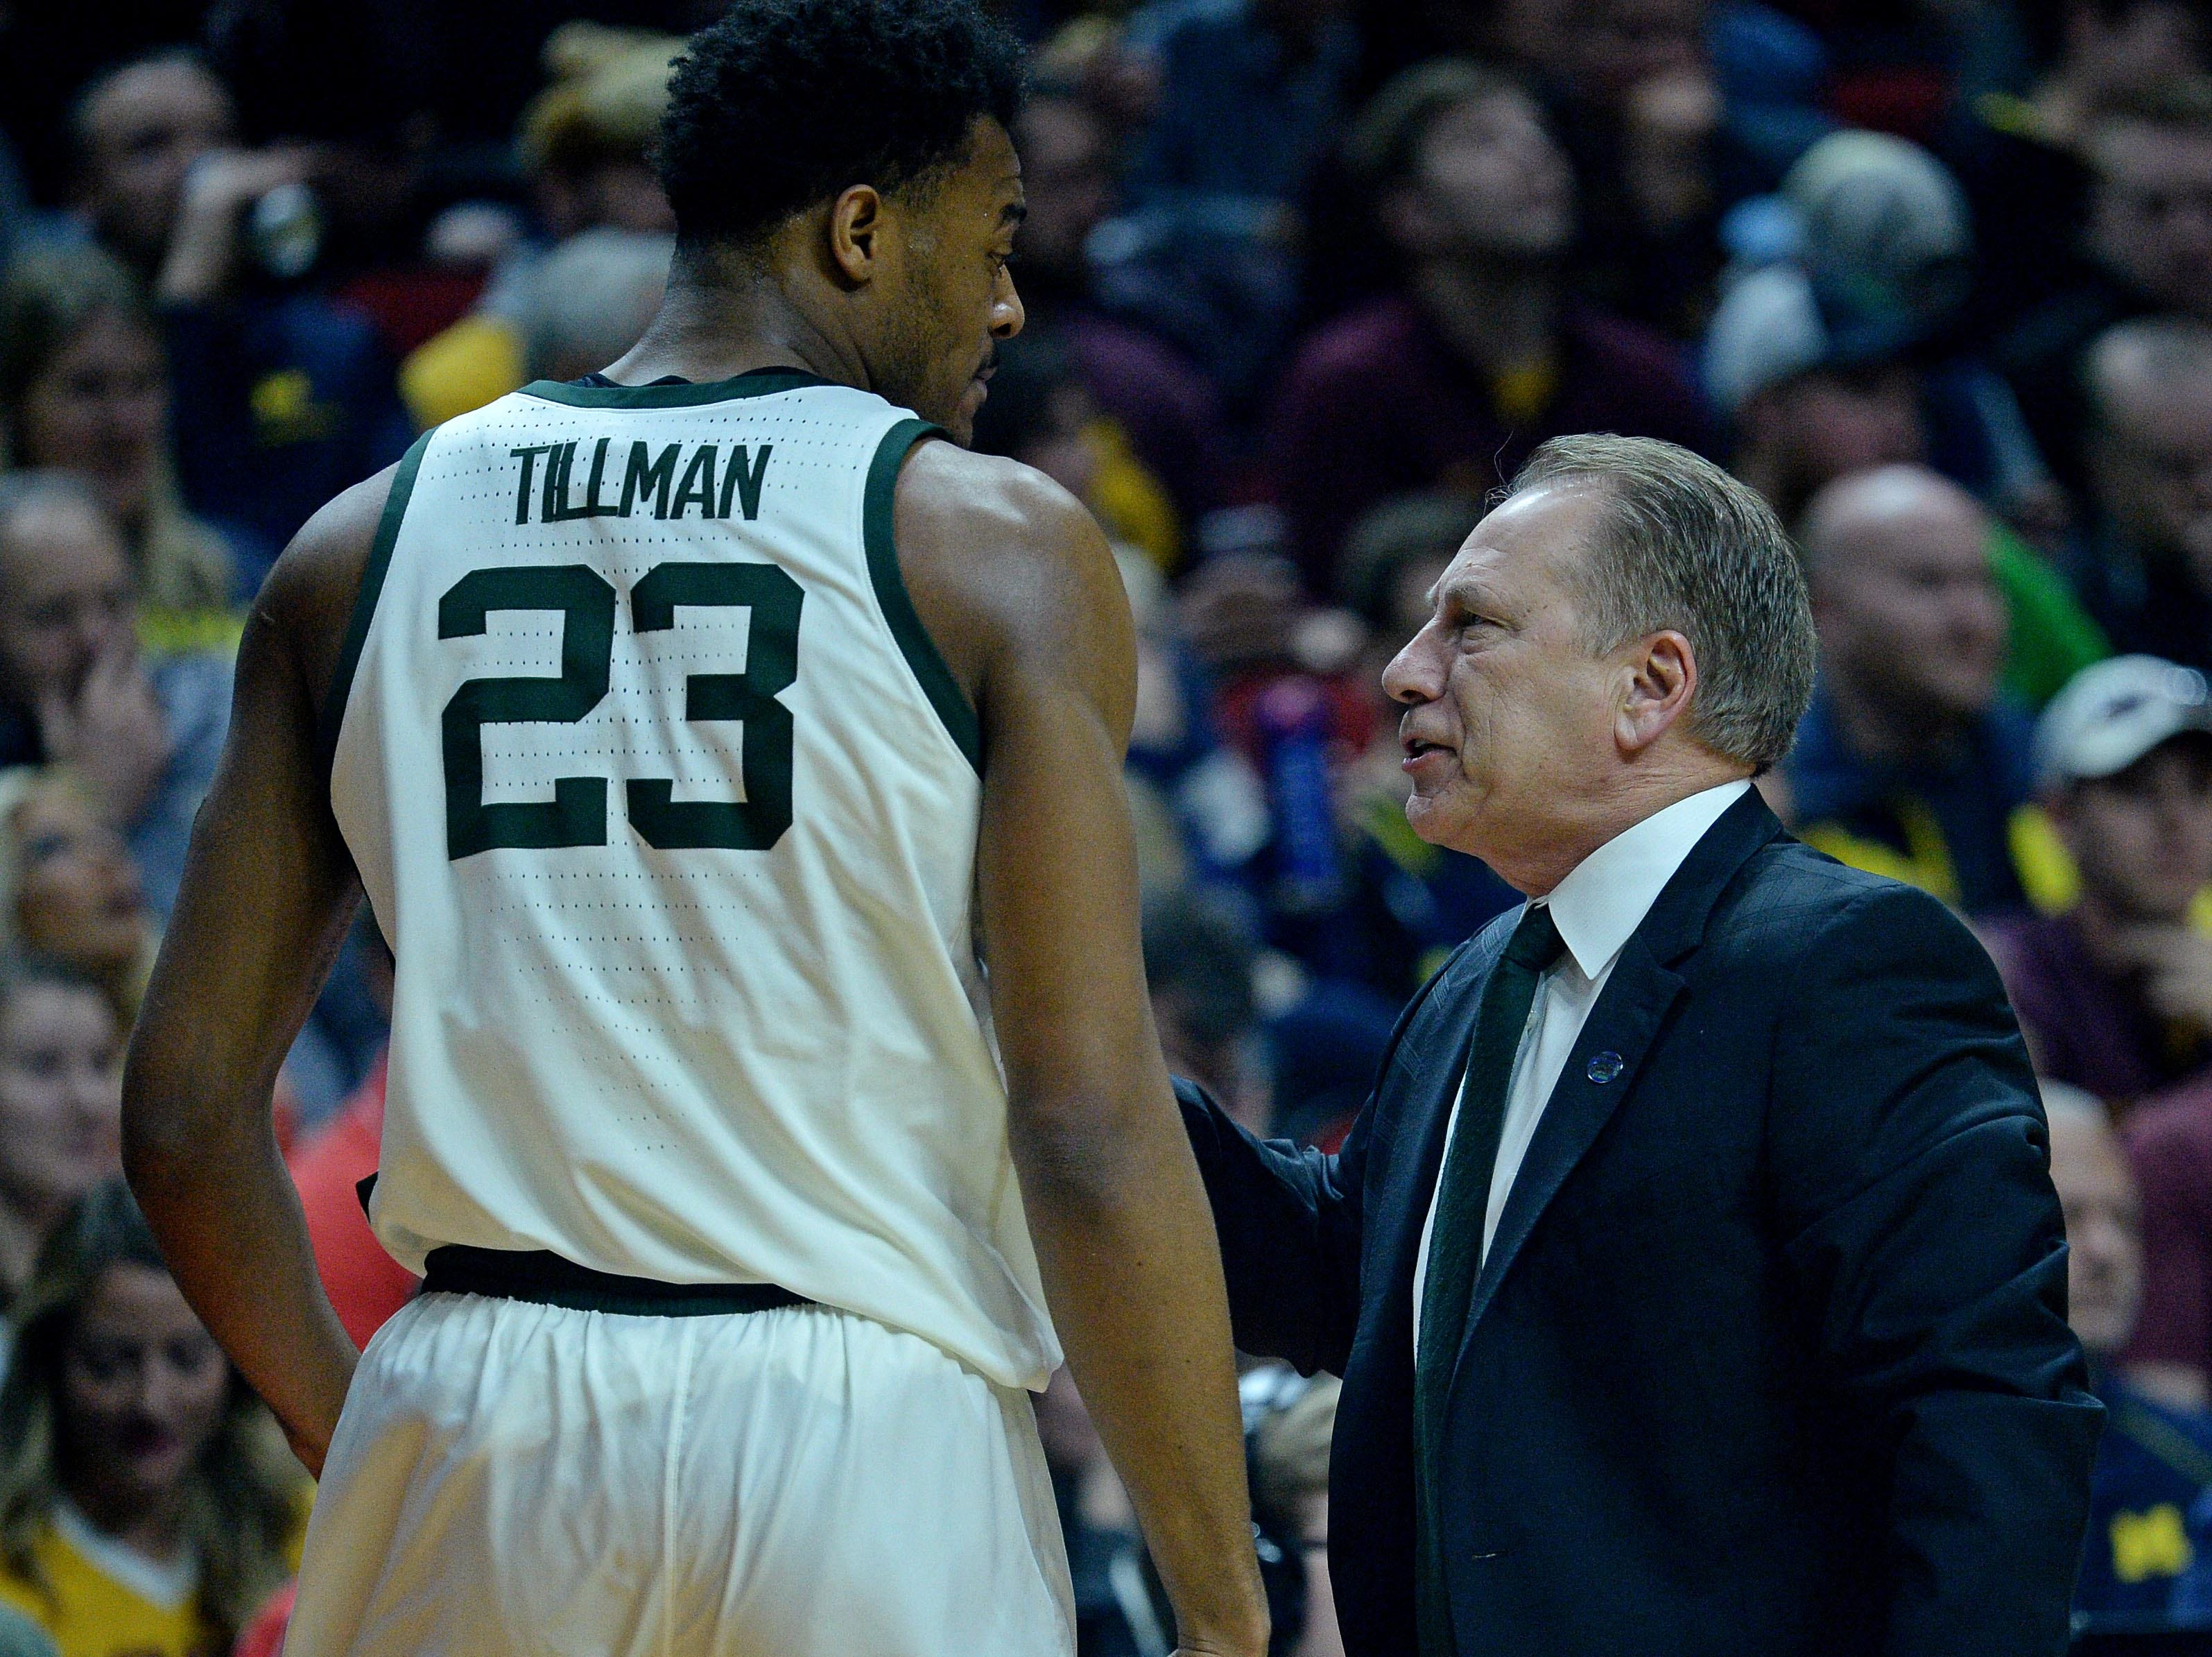 Mar 23, 2019; Des Moines, IA, United States; Michigan State Spartans head coach Tom Izzo talks to Michigan State Spartans forward Xavier Tillman (23) during the first half in the second round of the 2019 NCAA Tournament at Wells Fargo Arena. Mandatory Credit: Steven Branscombe-USA TODAY Sports